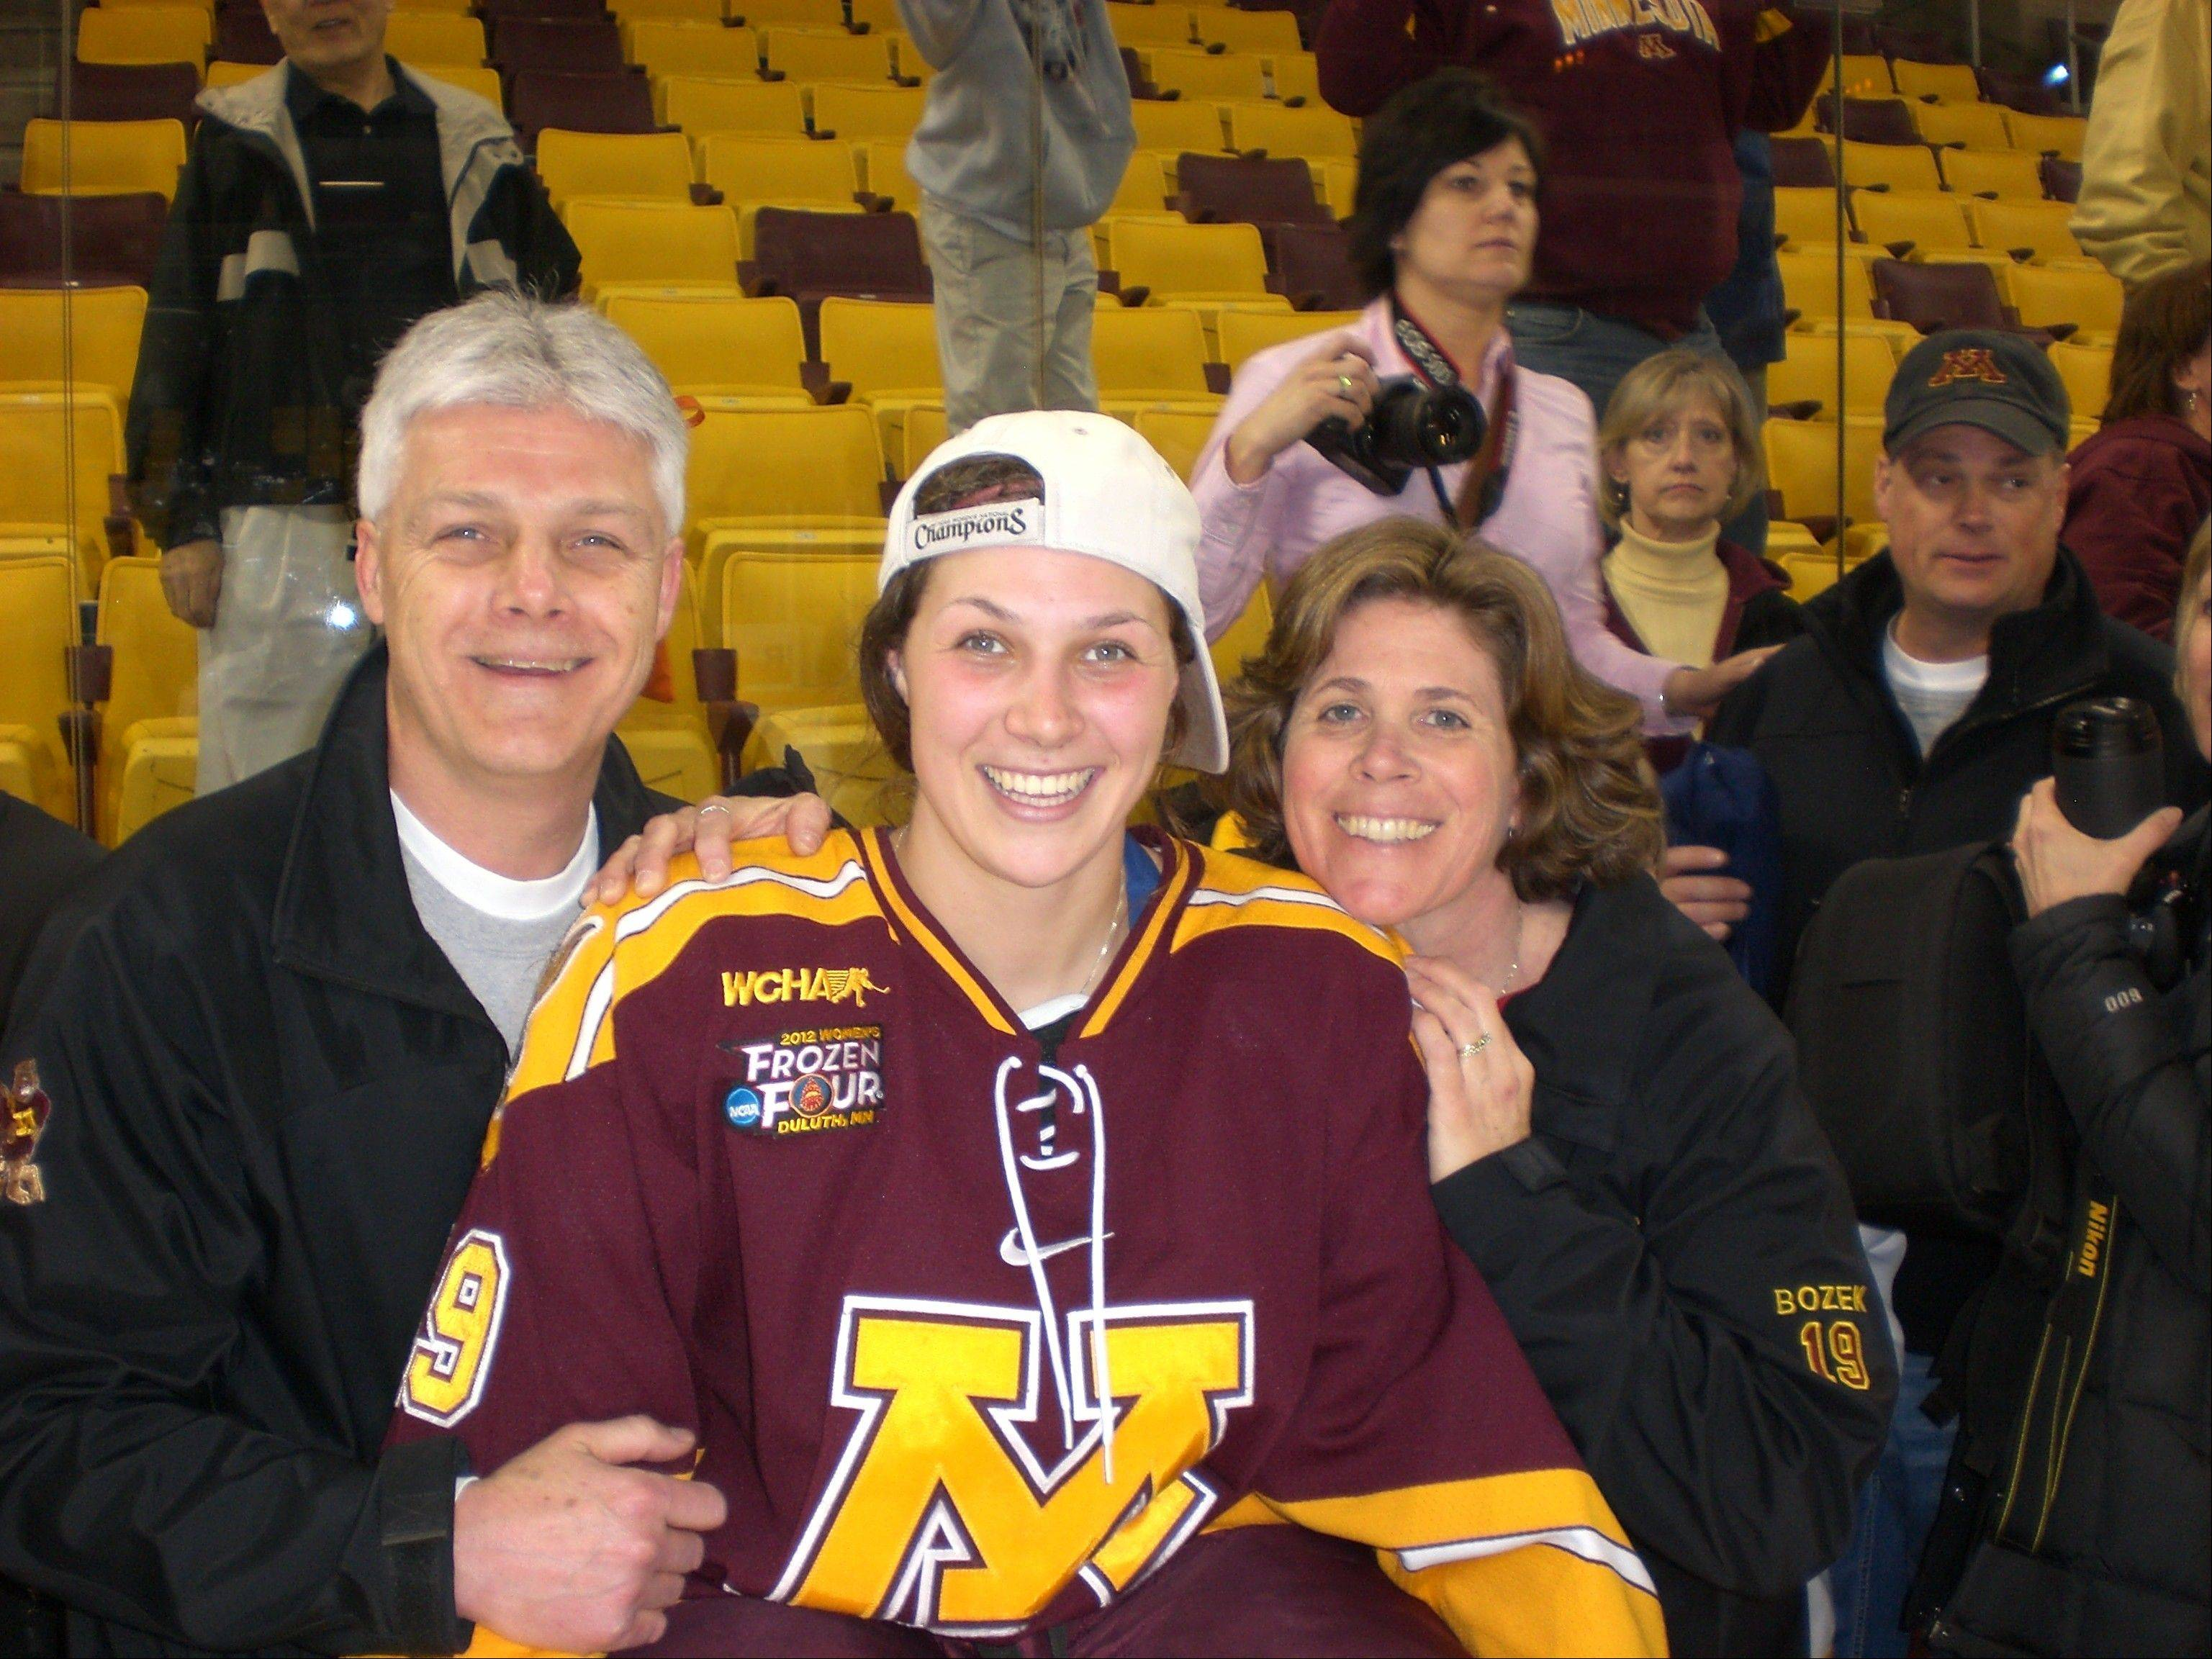 Buffalo Grove native Megan Bozek, who helped the University of Minnesota women's hockey team win consecutive NCAA championships, is headed to Socci to play in the 2014 Winter Olympics. Bozek, shown here with parents Tom and Patti Bozek after the 2012 National Championship game, was a standout defenseman at Minnesota.